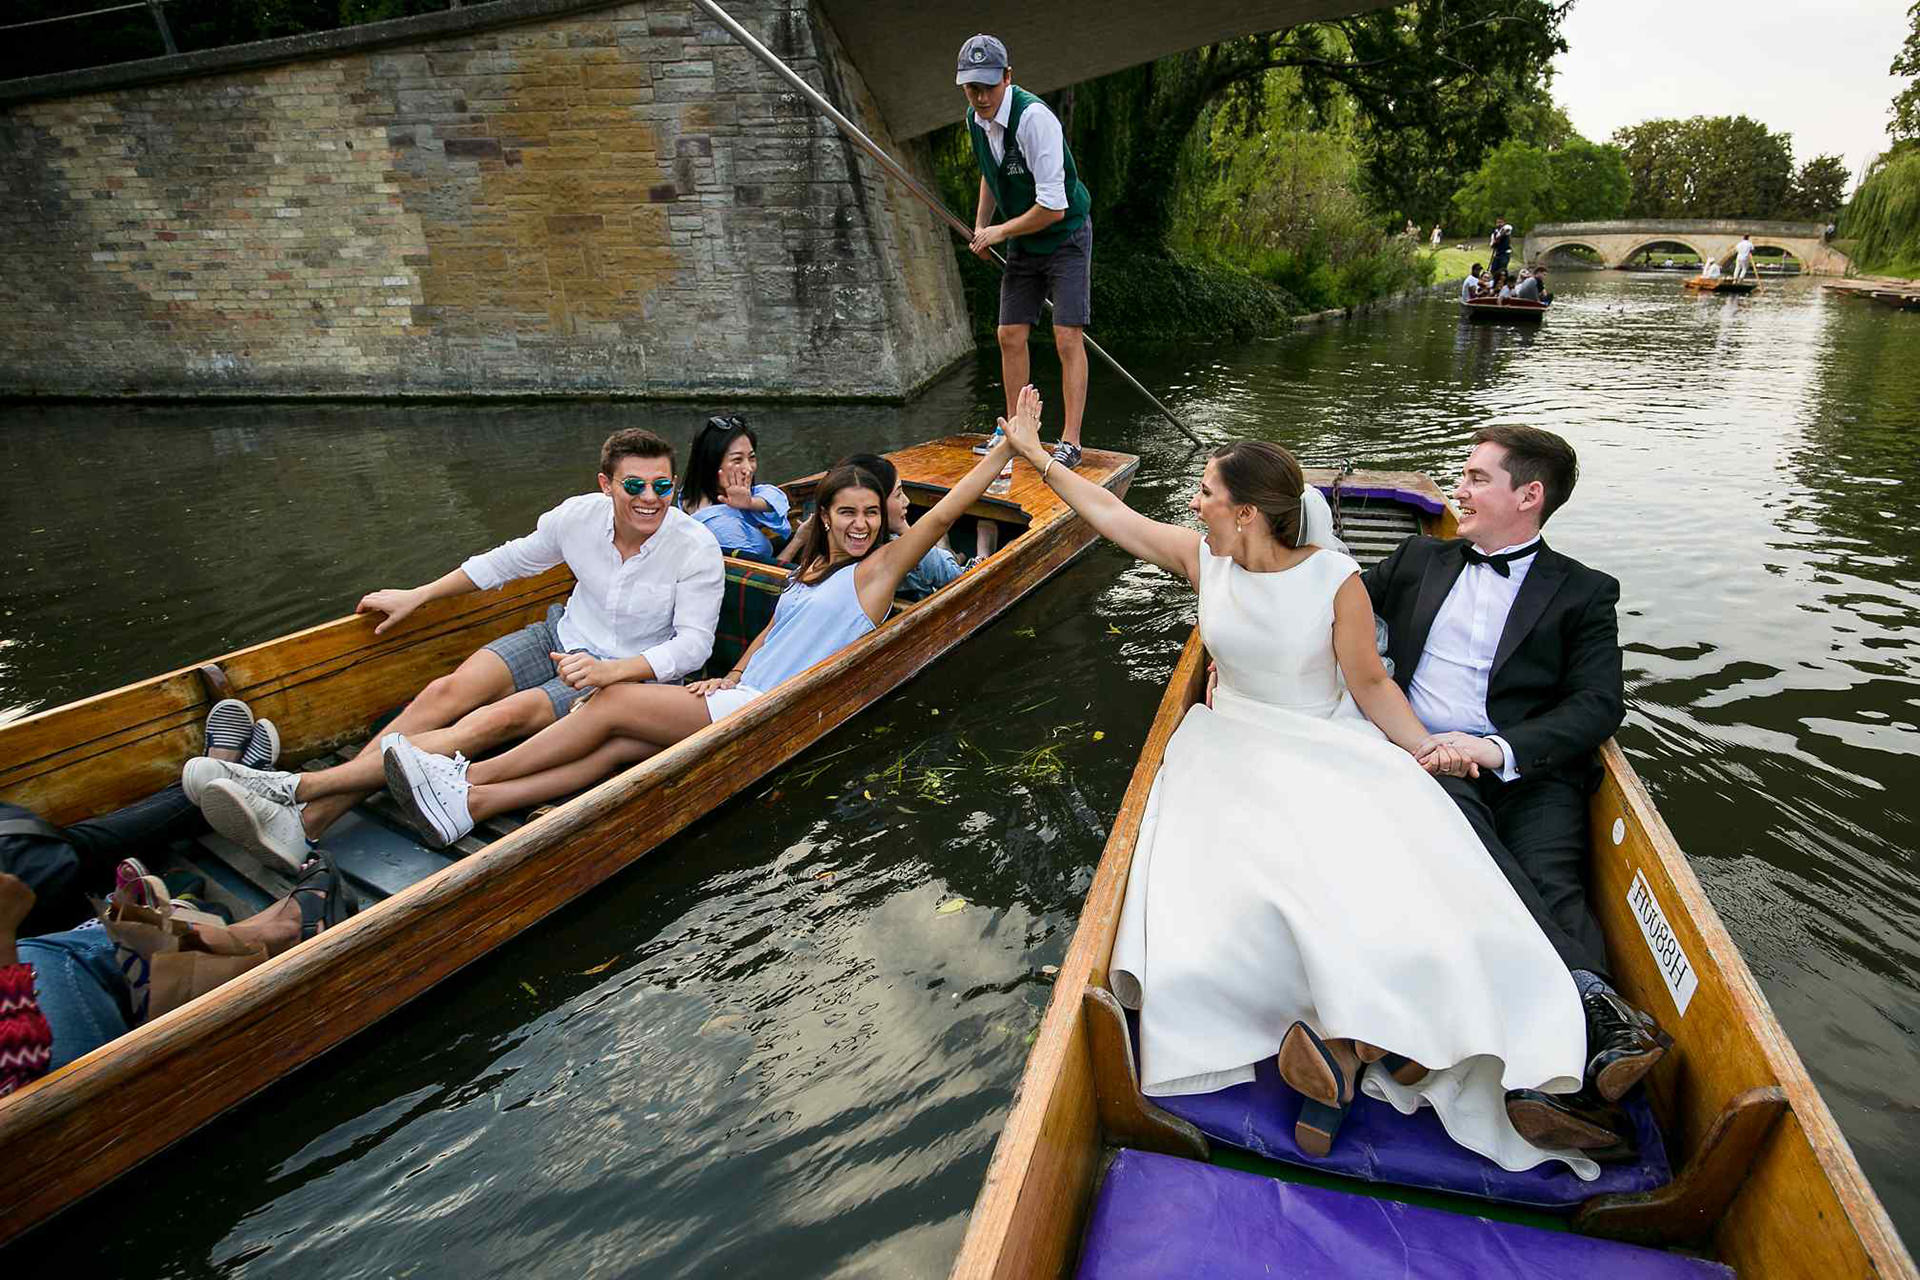 Aaron Storry, of Northamptonshire, is a wedding photographer for -